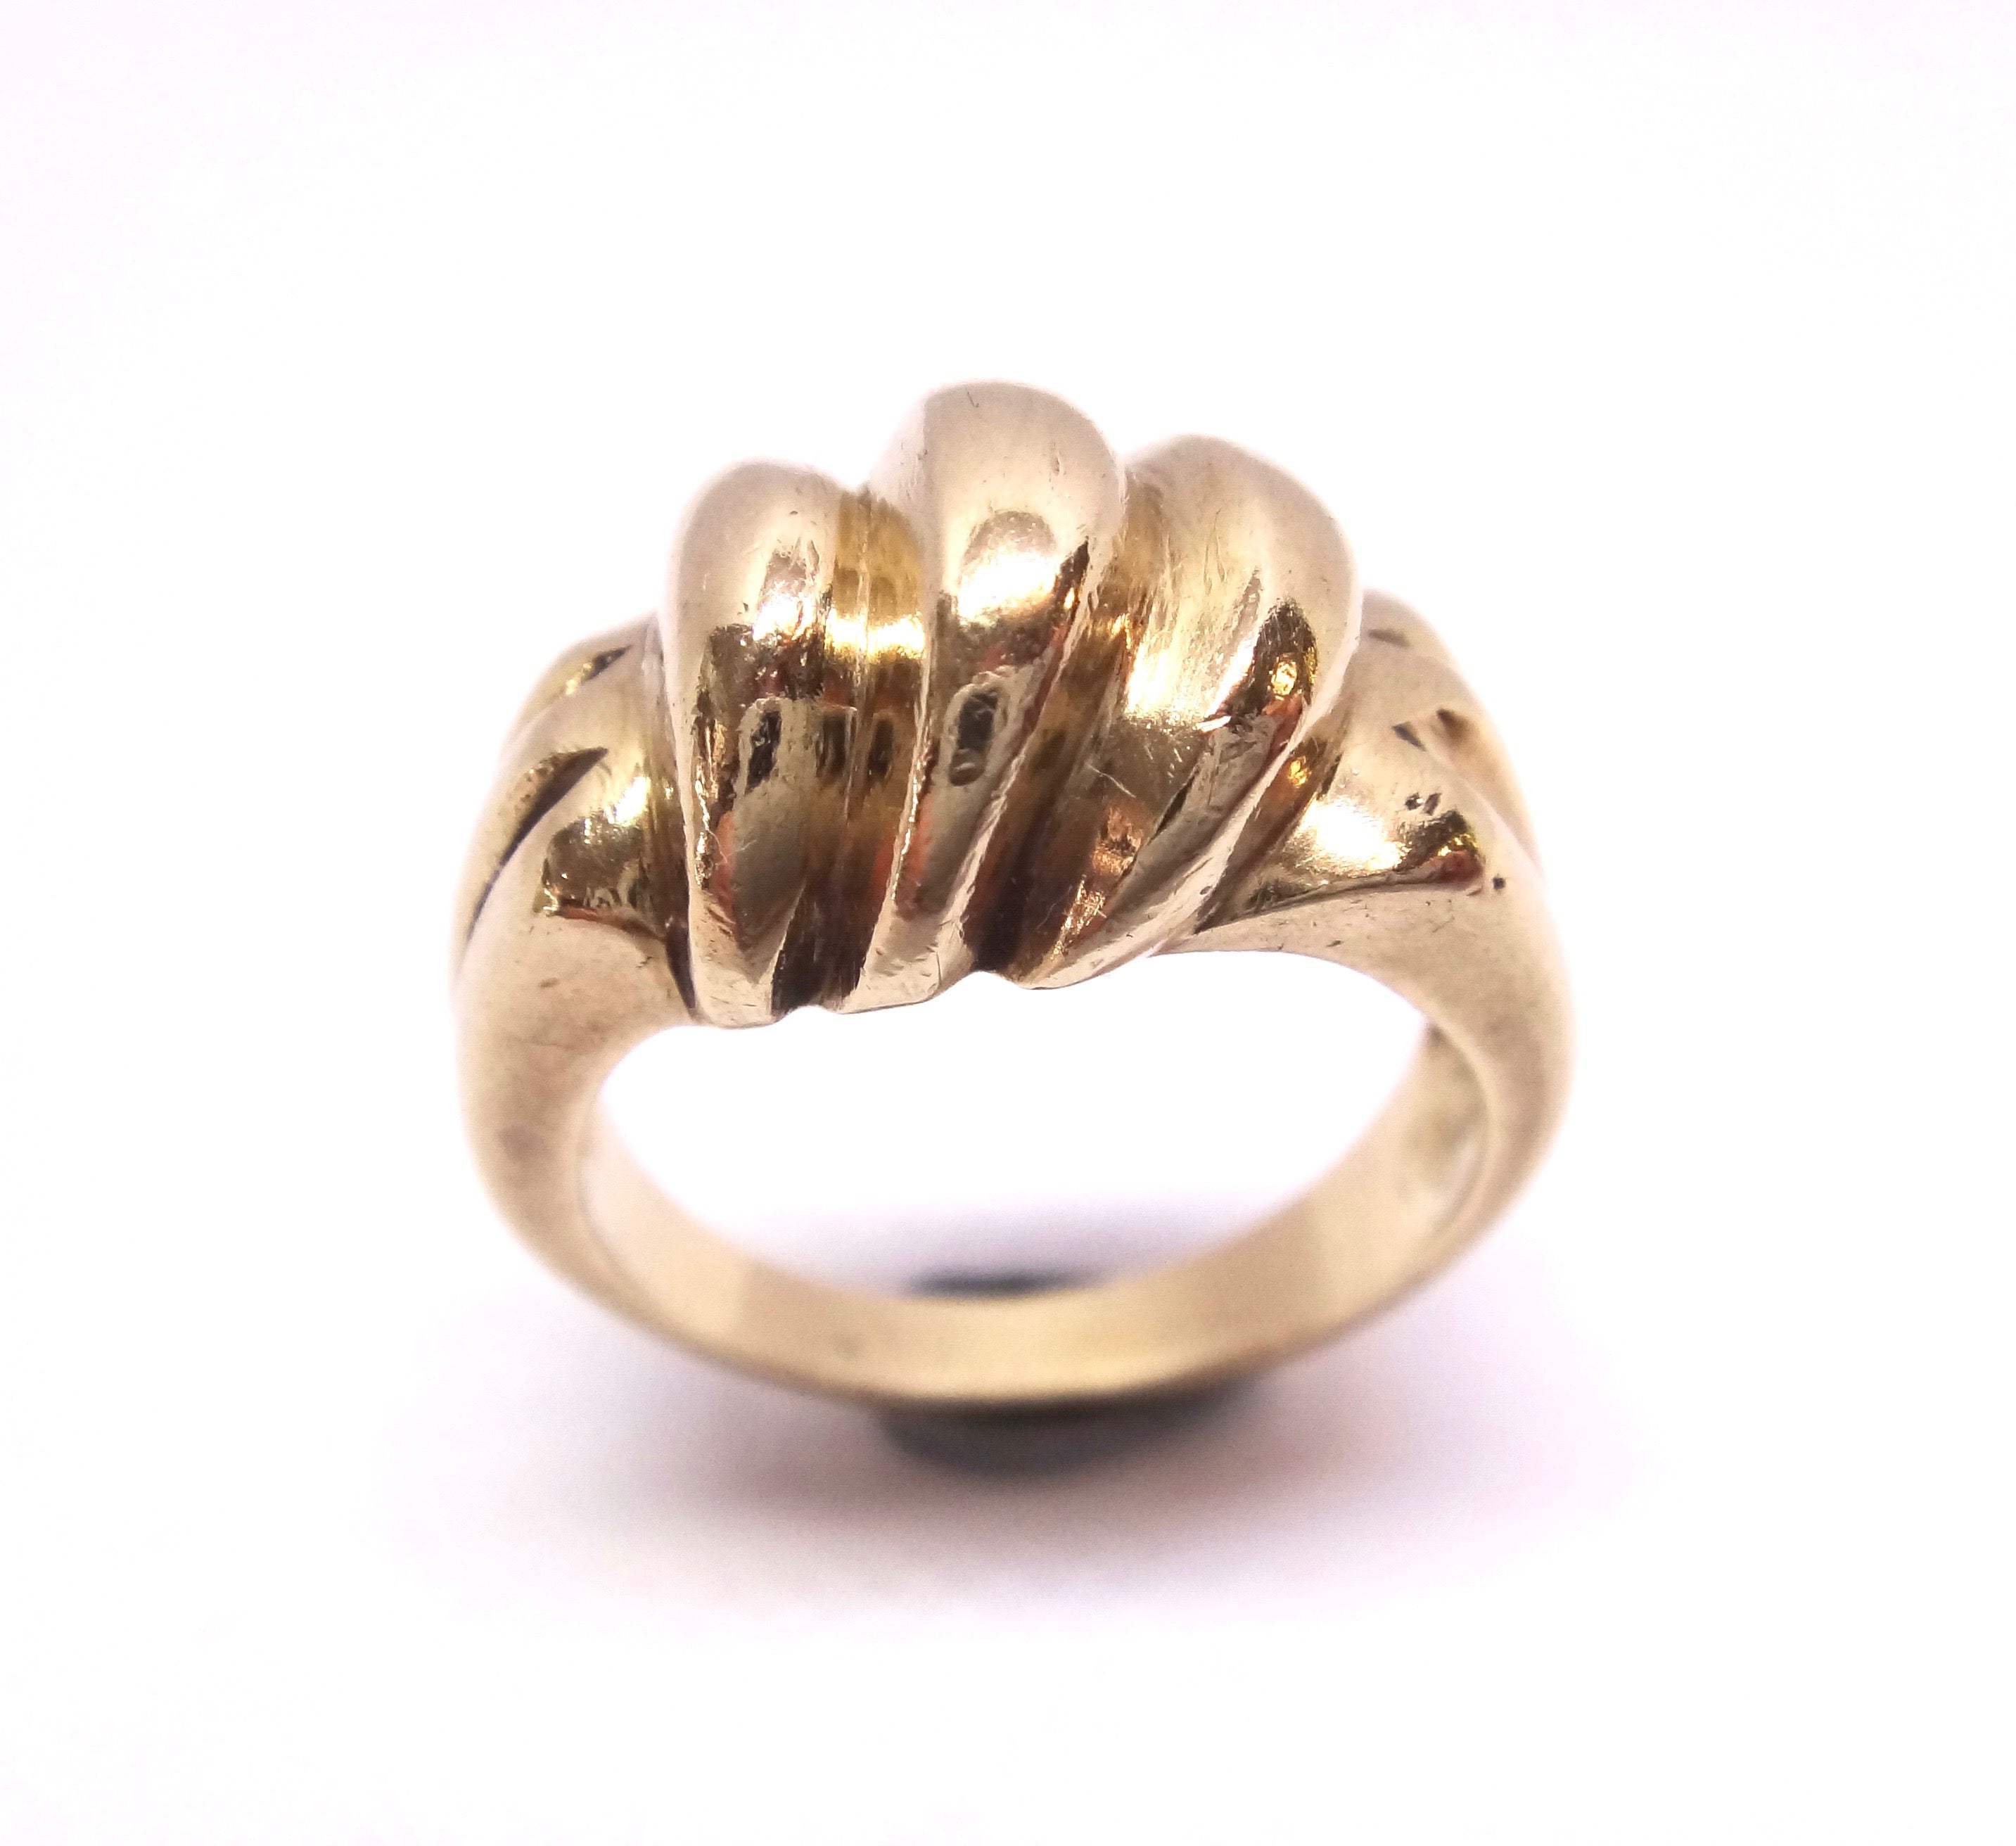 Heavy 9CT Yellow GOLD Swirl Patterned Ring